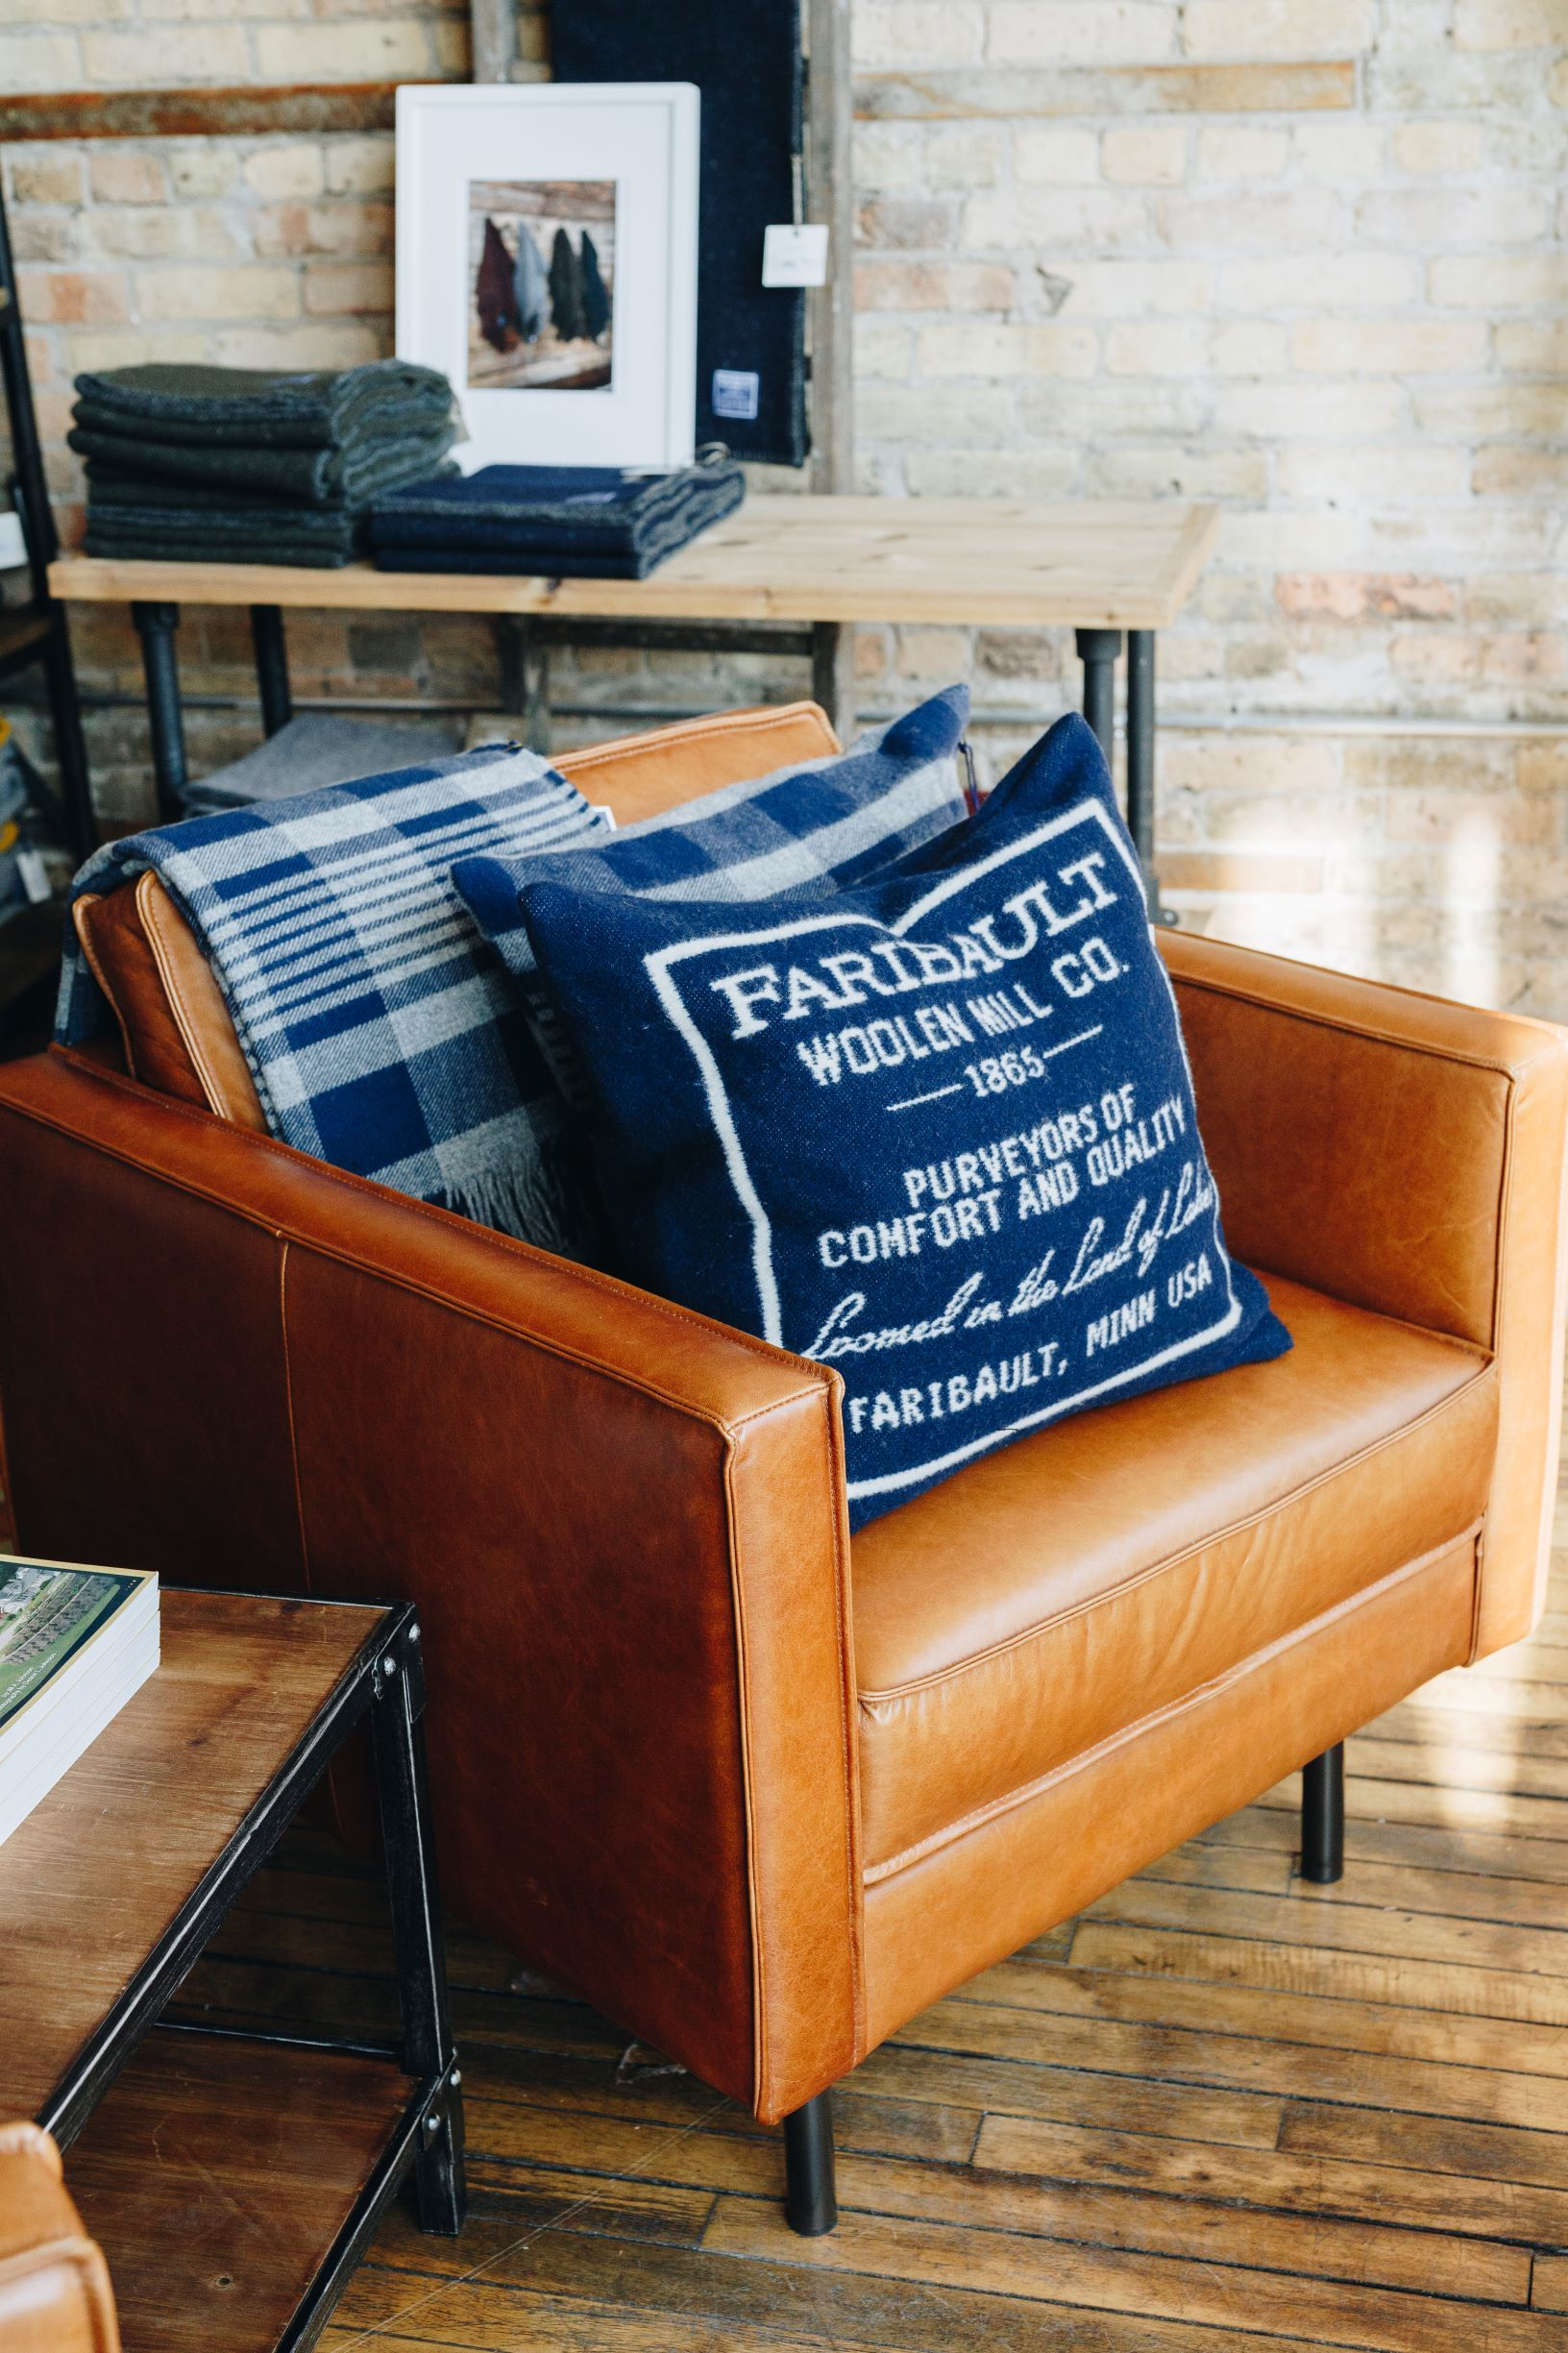 Pictured in Chair Faribault Plaid Throw in Navy